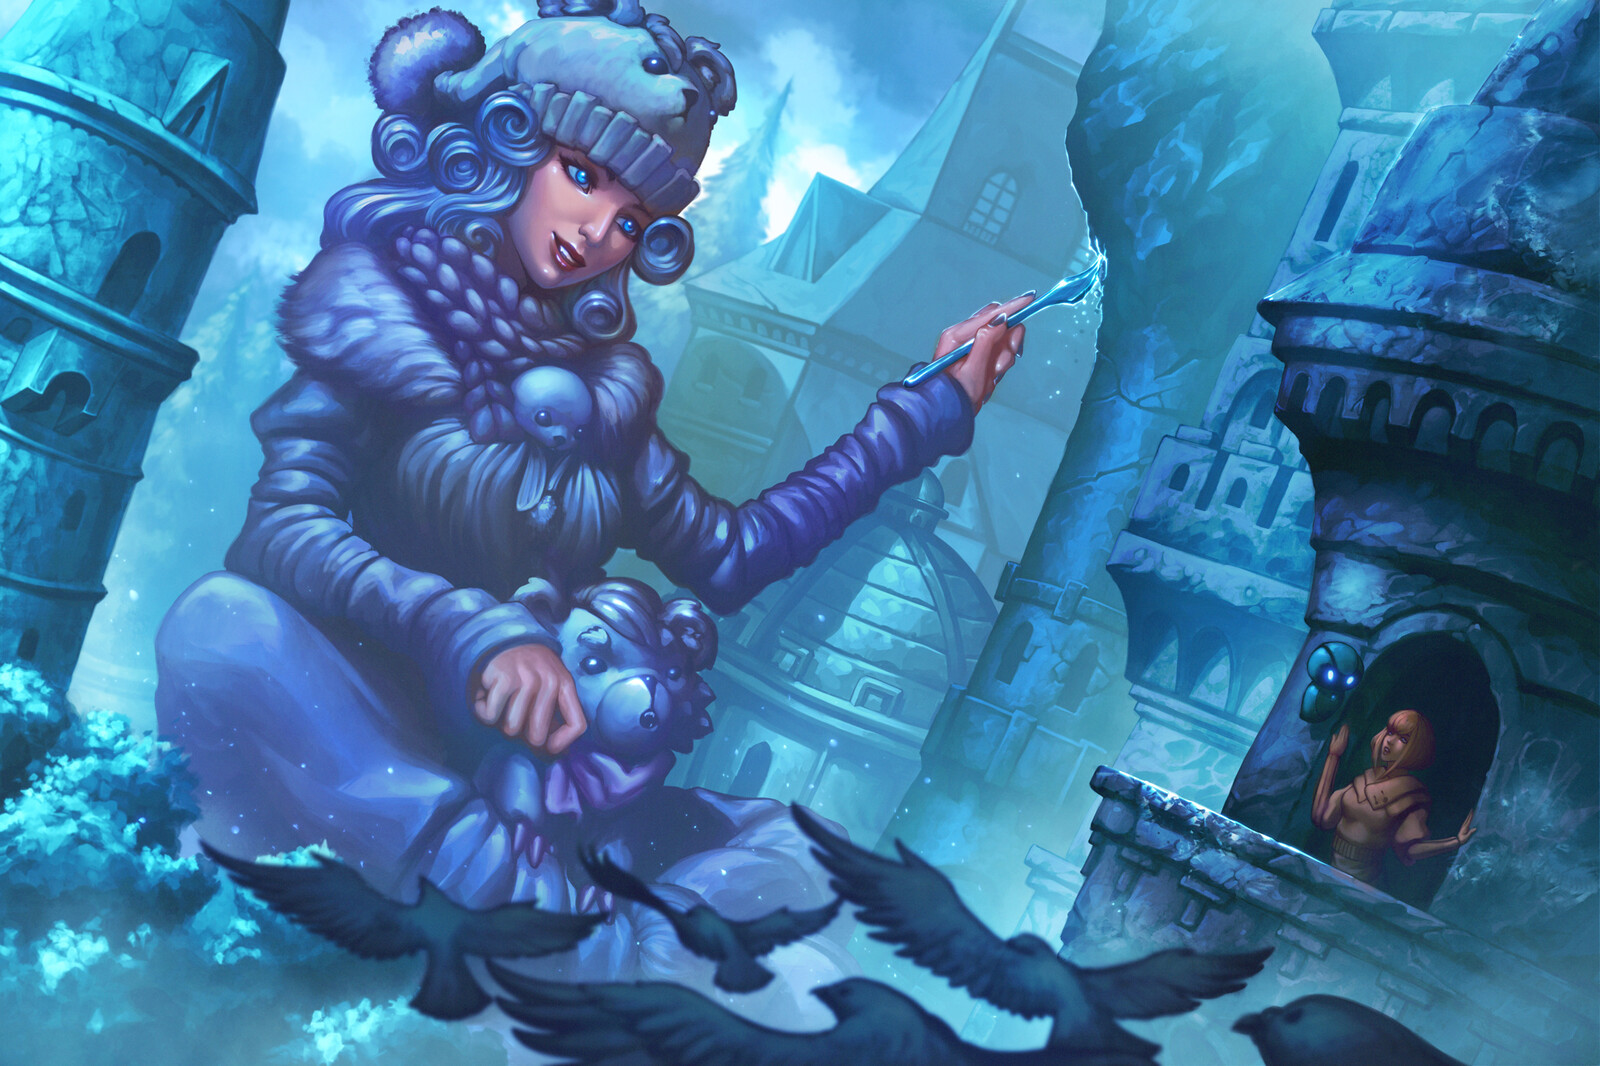 In the world of the Ice Queen